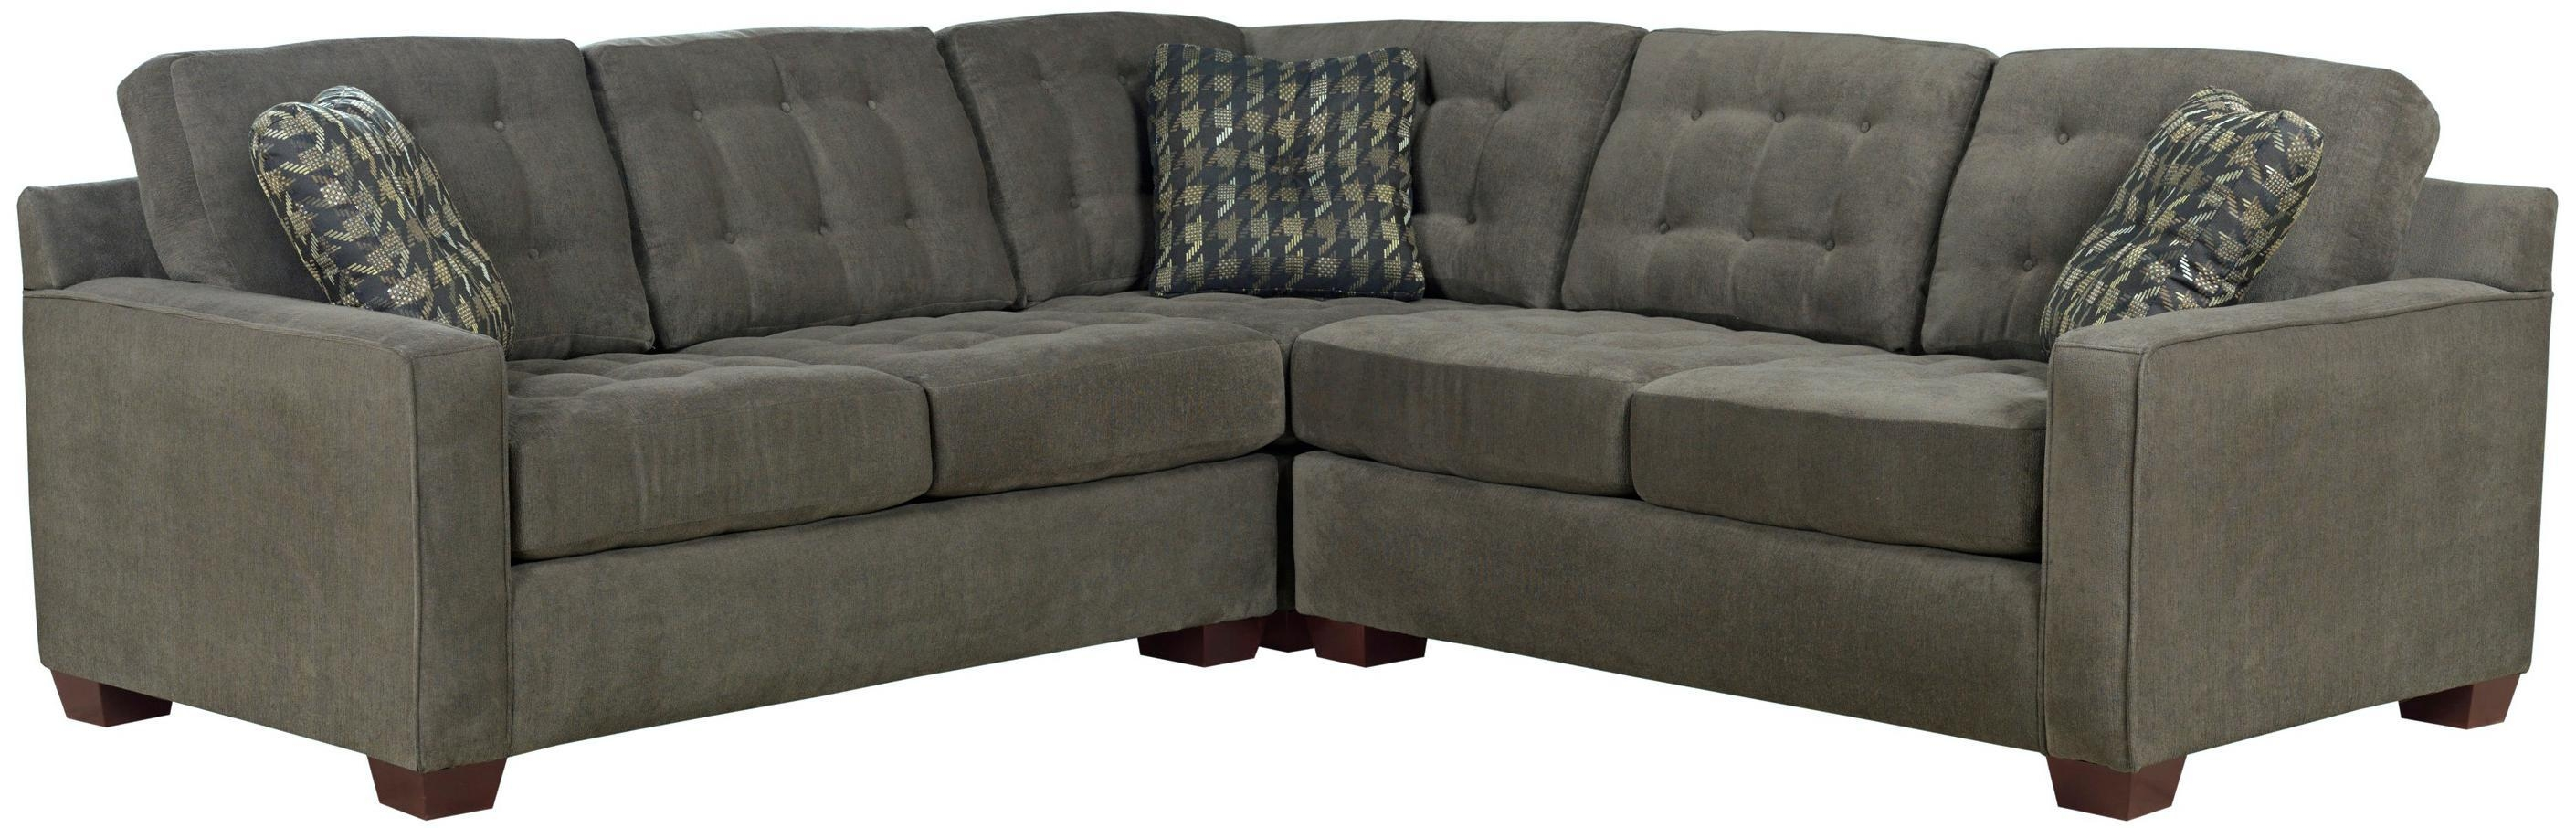 Broyhill Furniture Tribeca Contemporary L Shaped Sectional Sofa With Regard To Broyhill Sectional Sofa (Image 8 of 15)